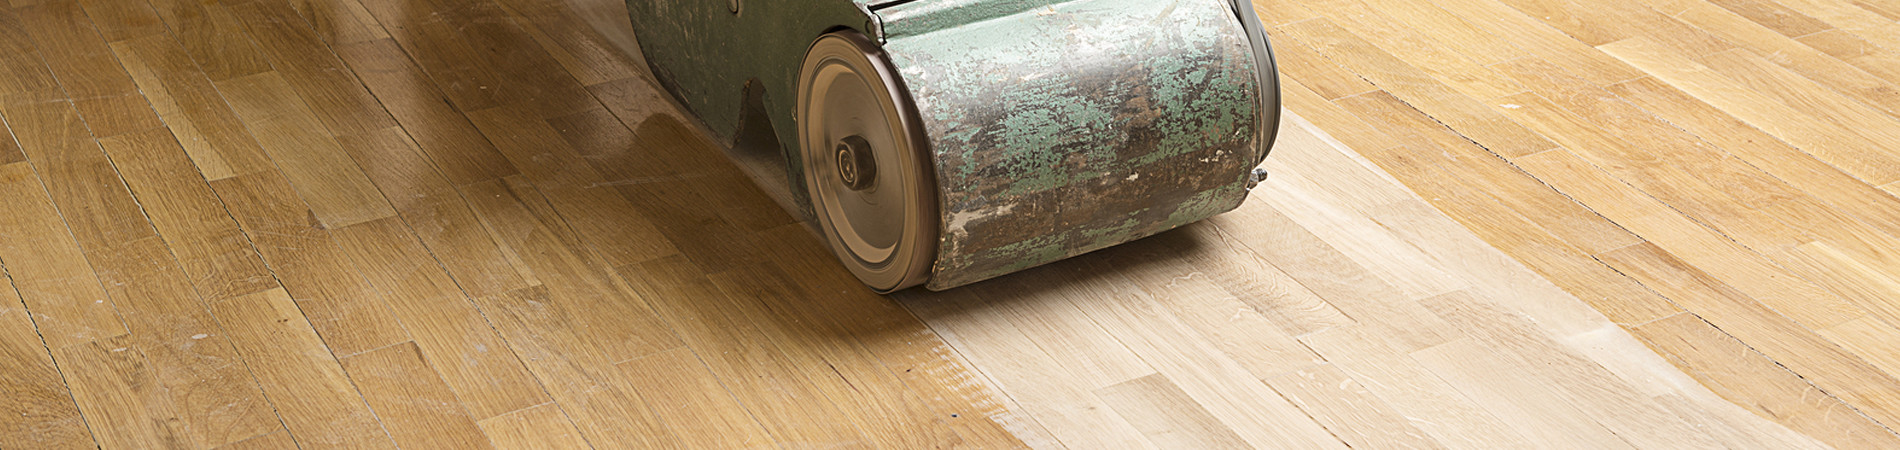 refinishing hardwood flooring